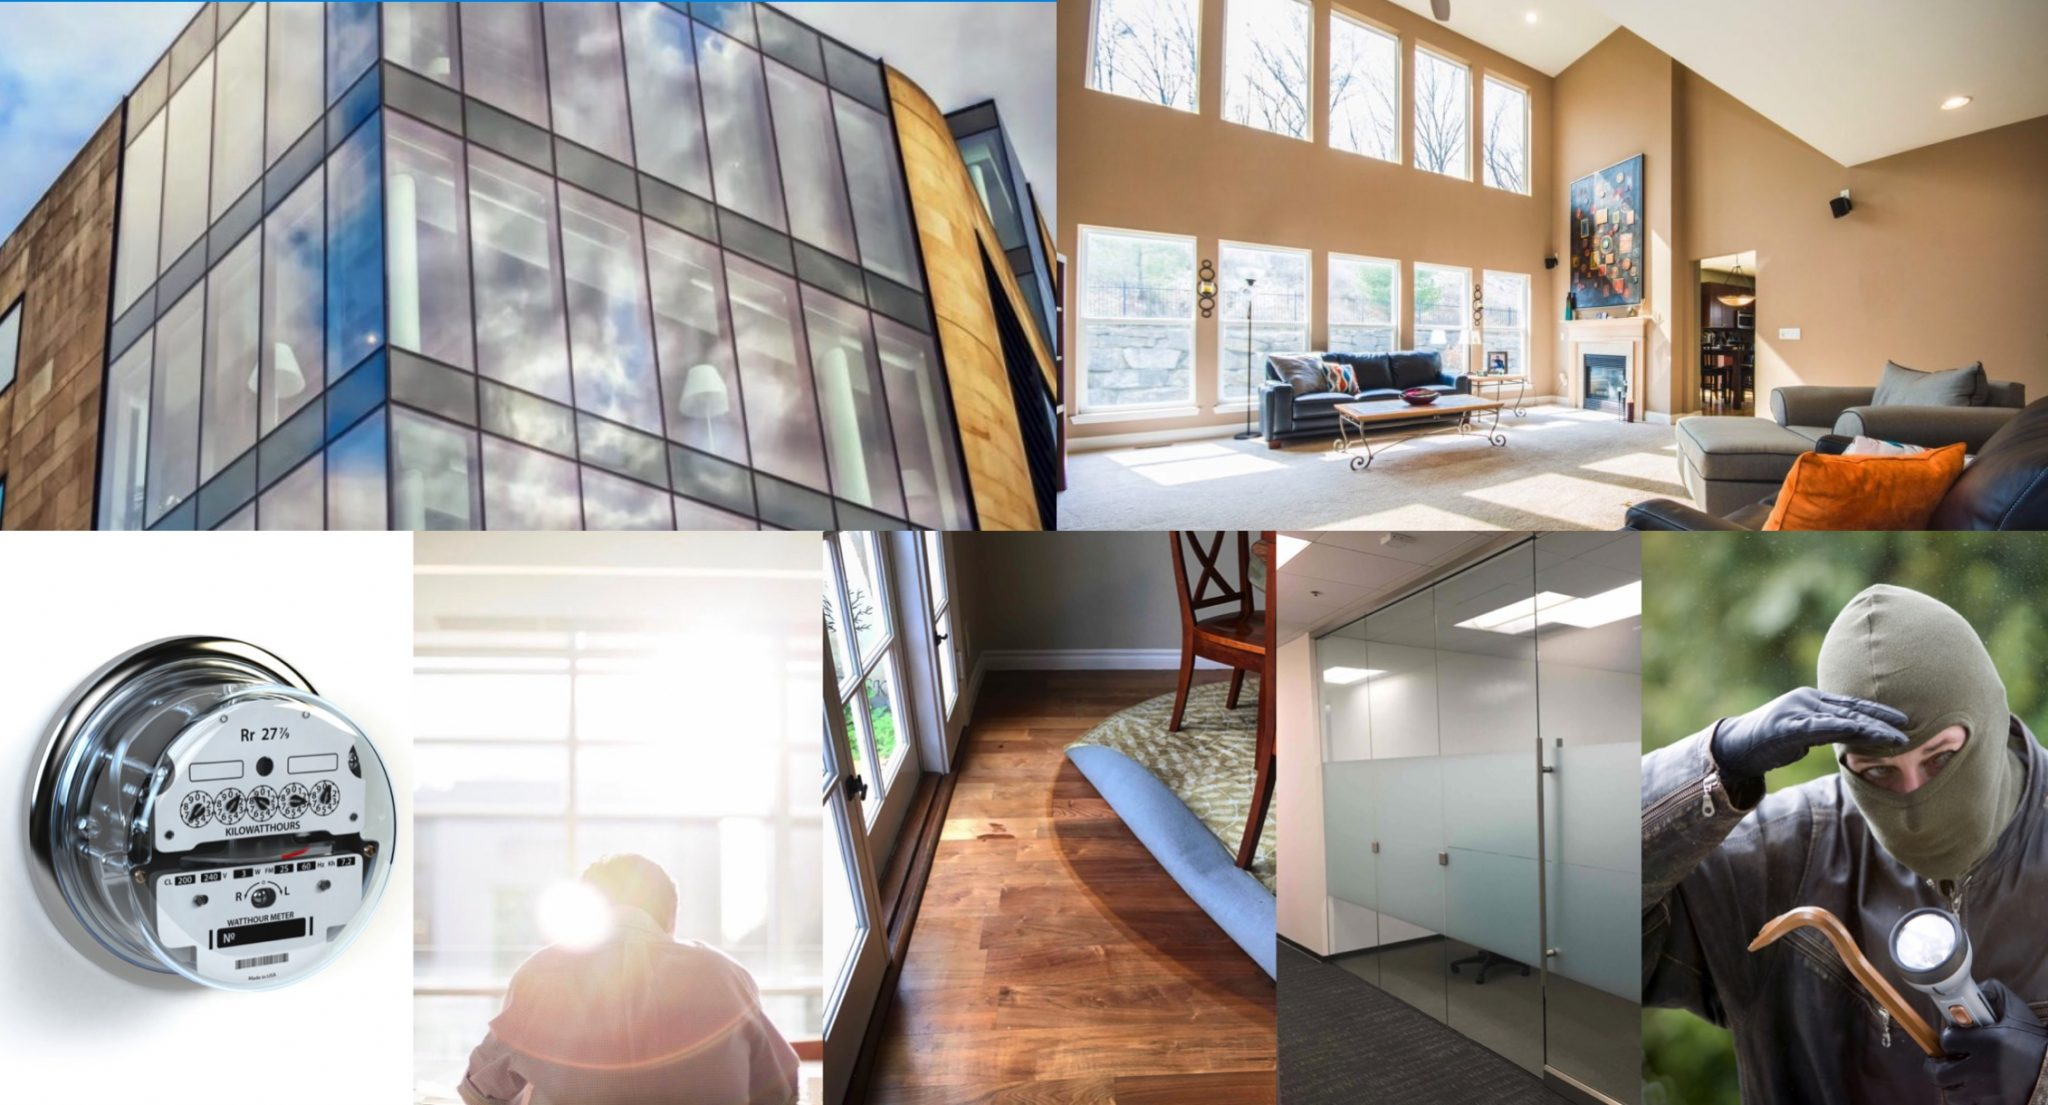 What are Window Films and How Can They Be Used?